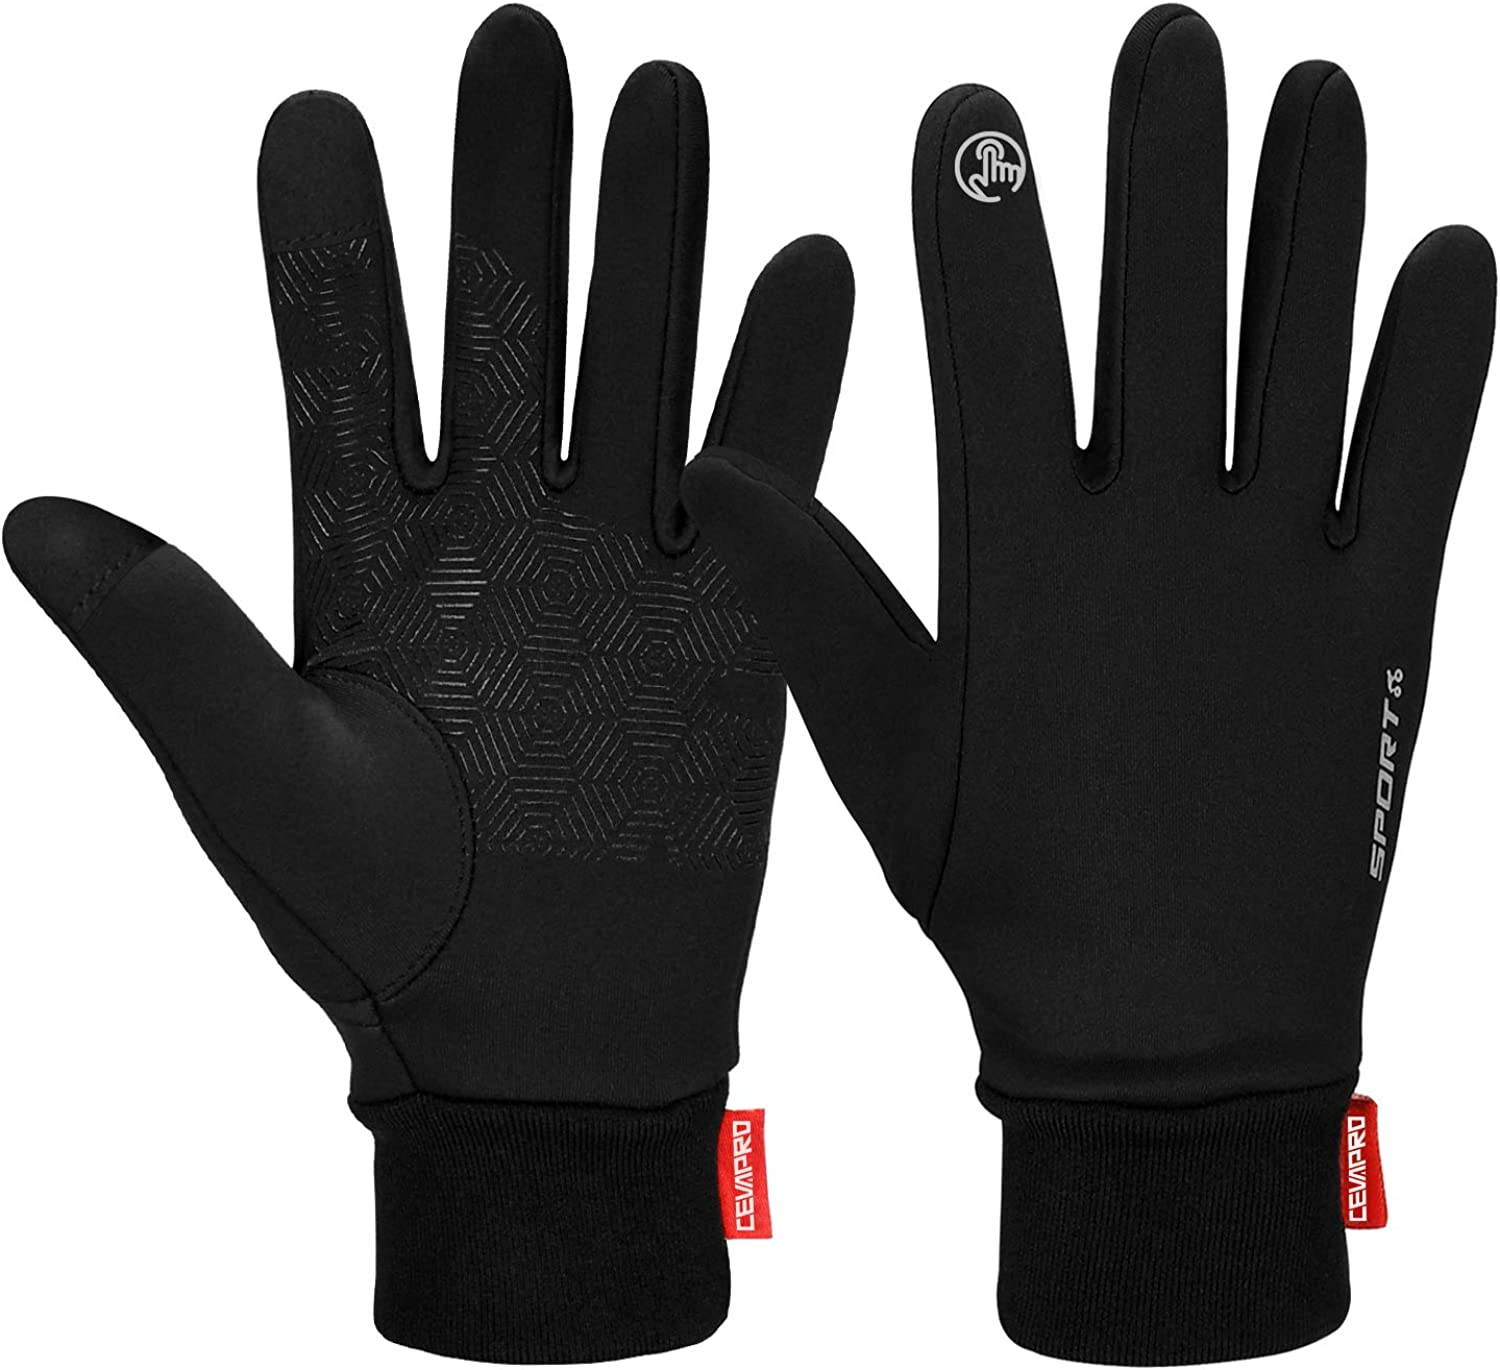 Cevapro Women Winter Gloves Touch Screen Gloves Water Resistant Warm Gloves for Hiking, Running, Driving